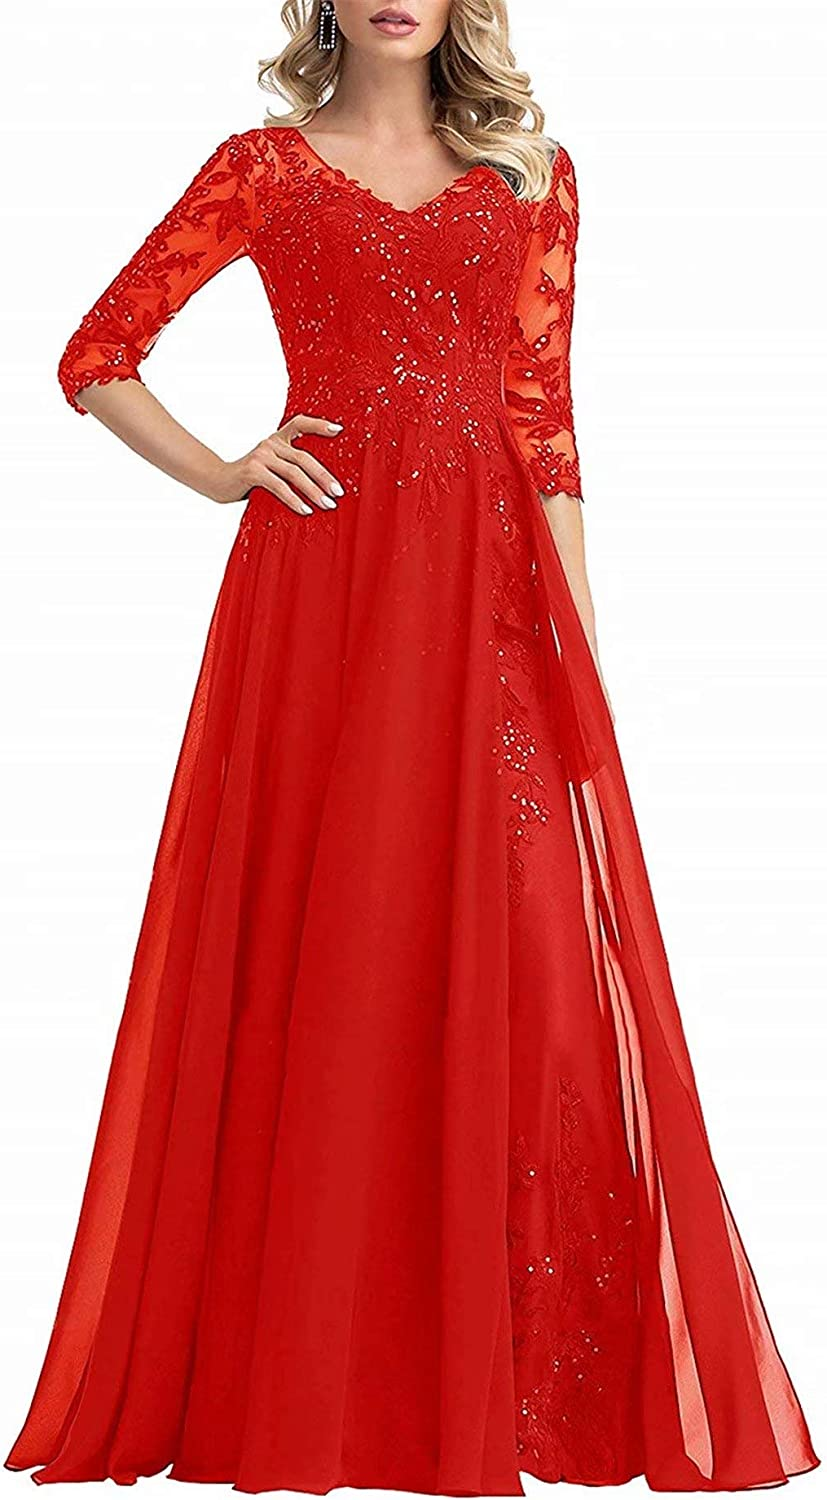 Women's Mother of The Bride Dresses 3/4 Sleeves Formal Evening Gowns Lace Applique Beading Sequins